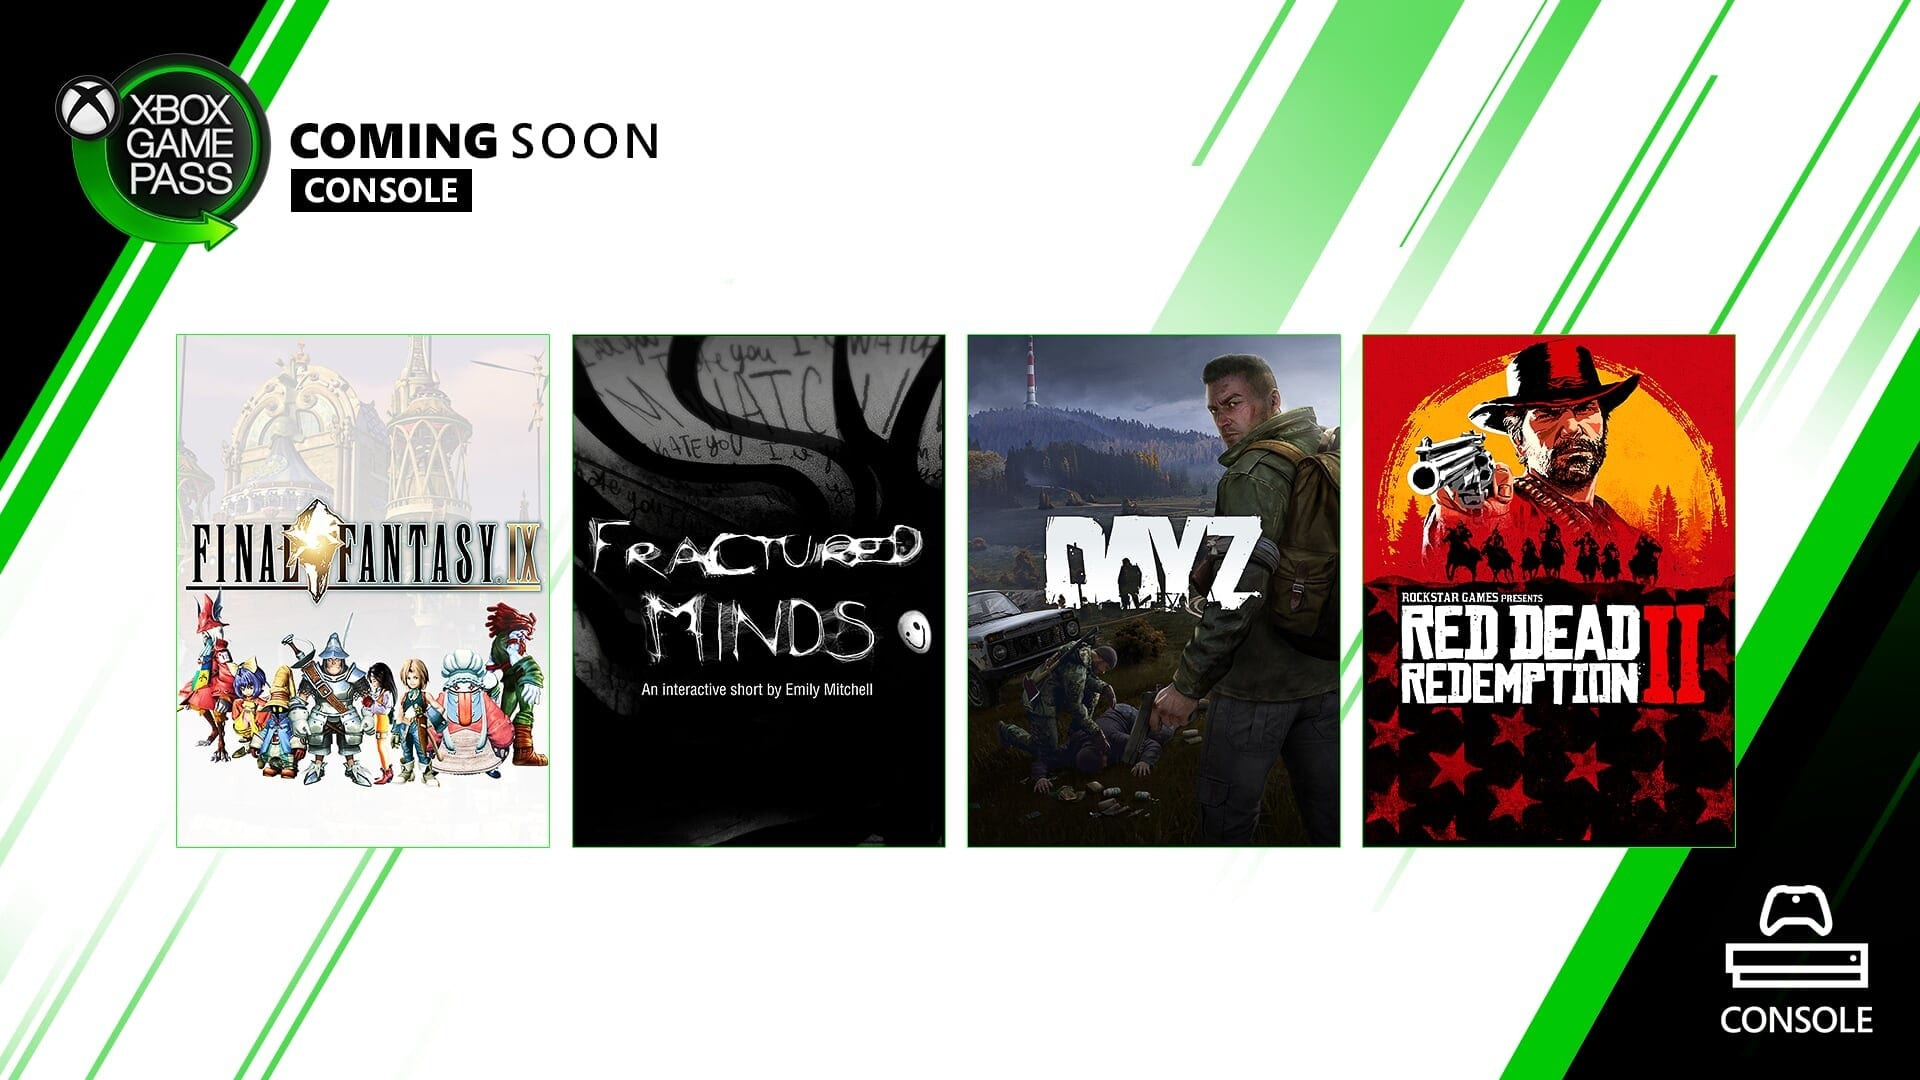 console-coming-soon